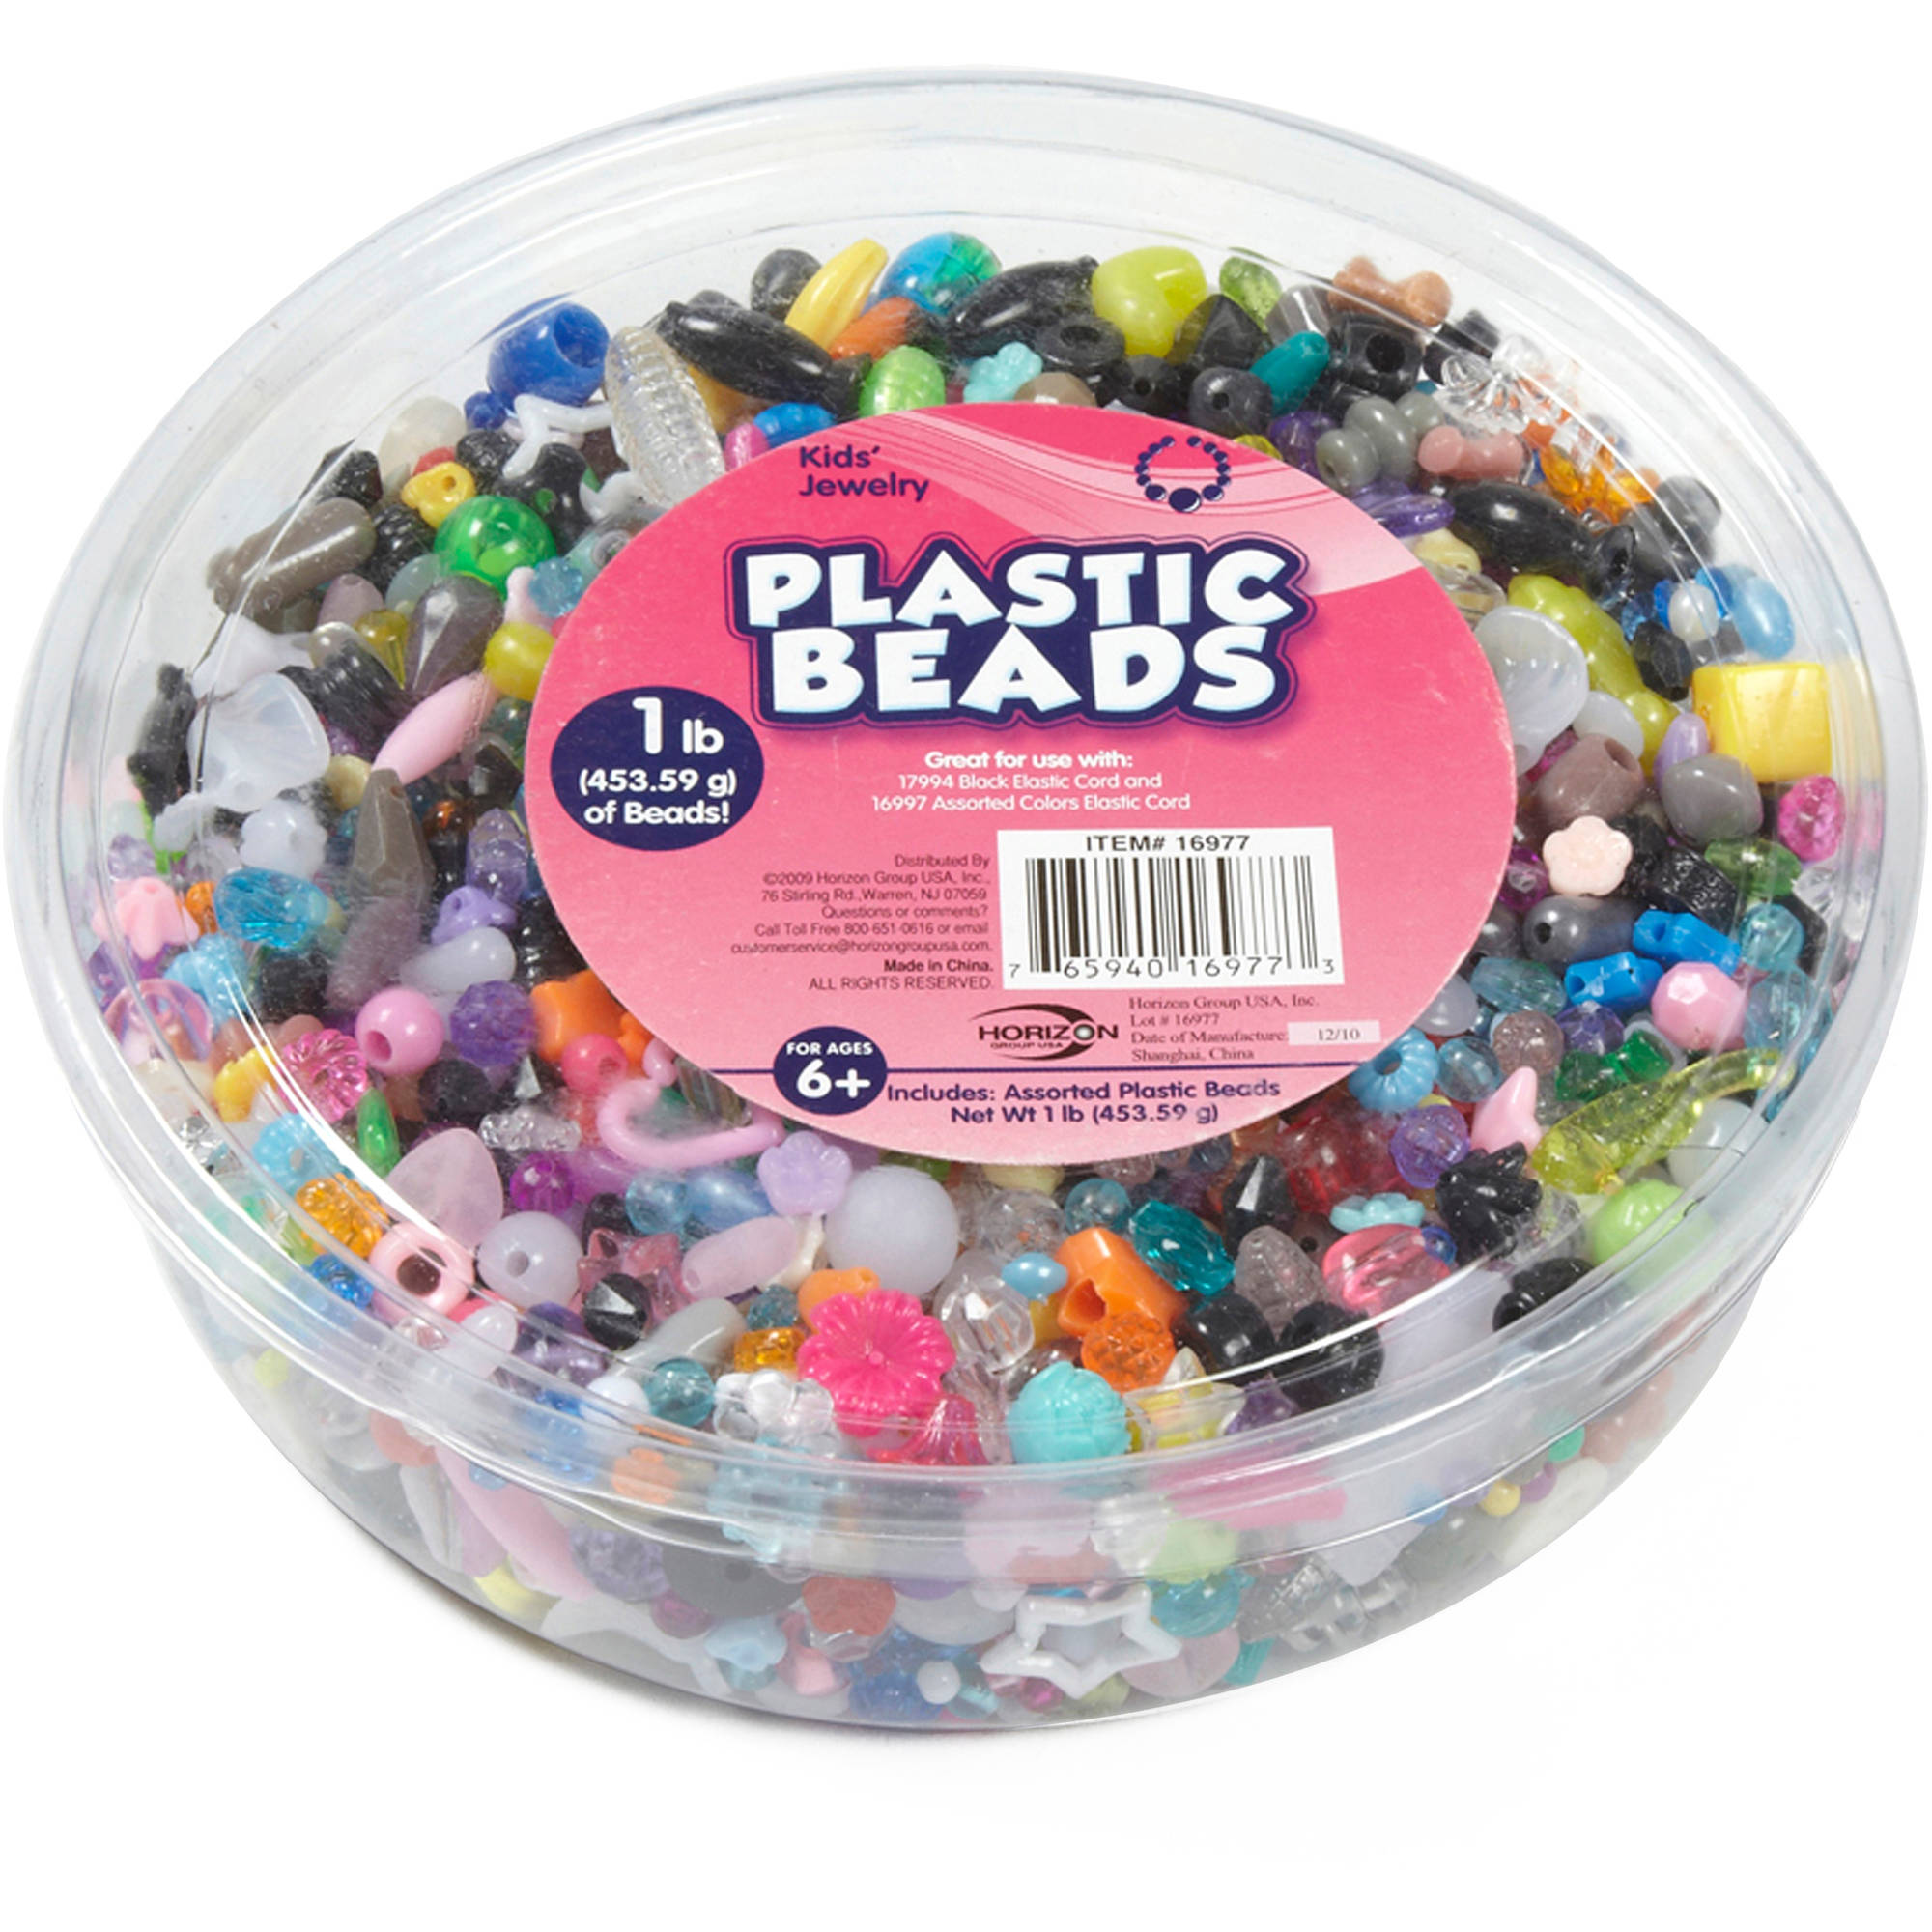 Kids Craft Plastic Bead Value Pack by Horizon Group USA